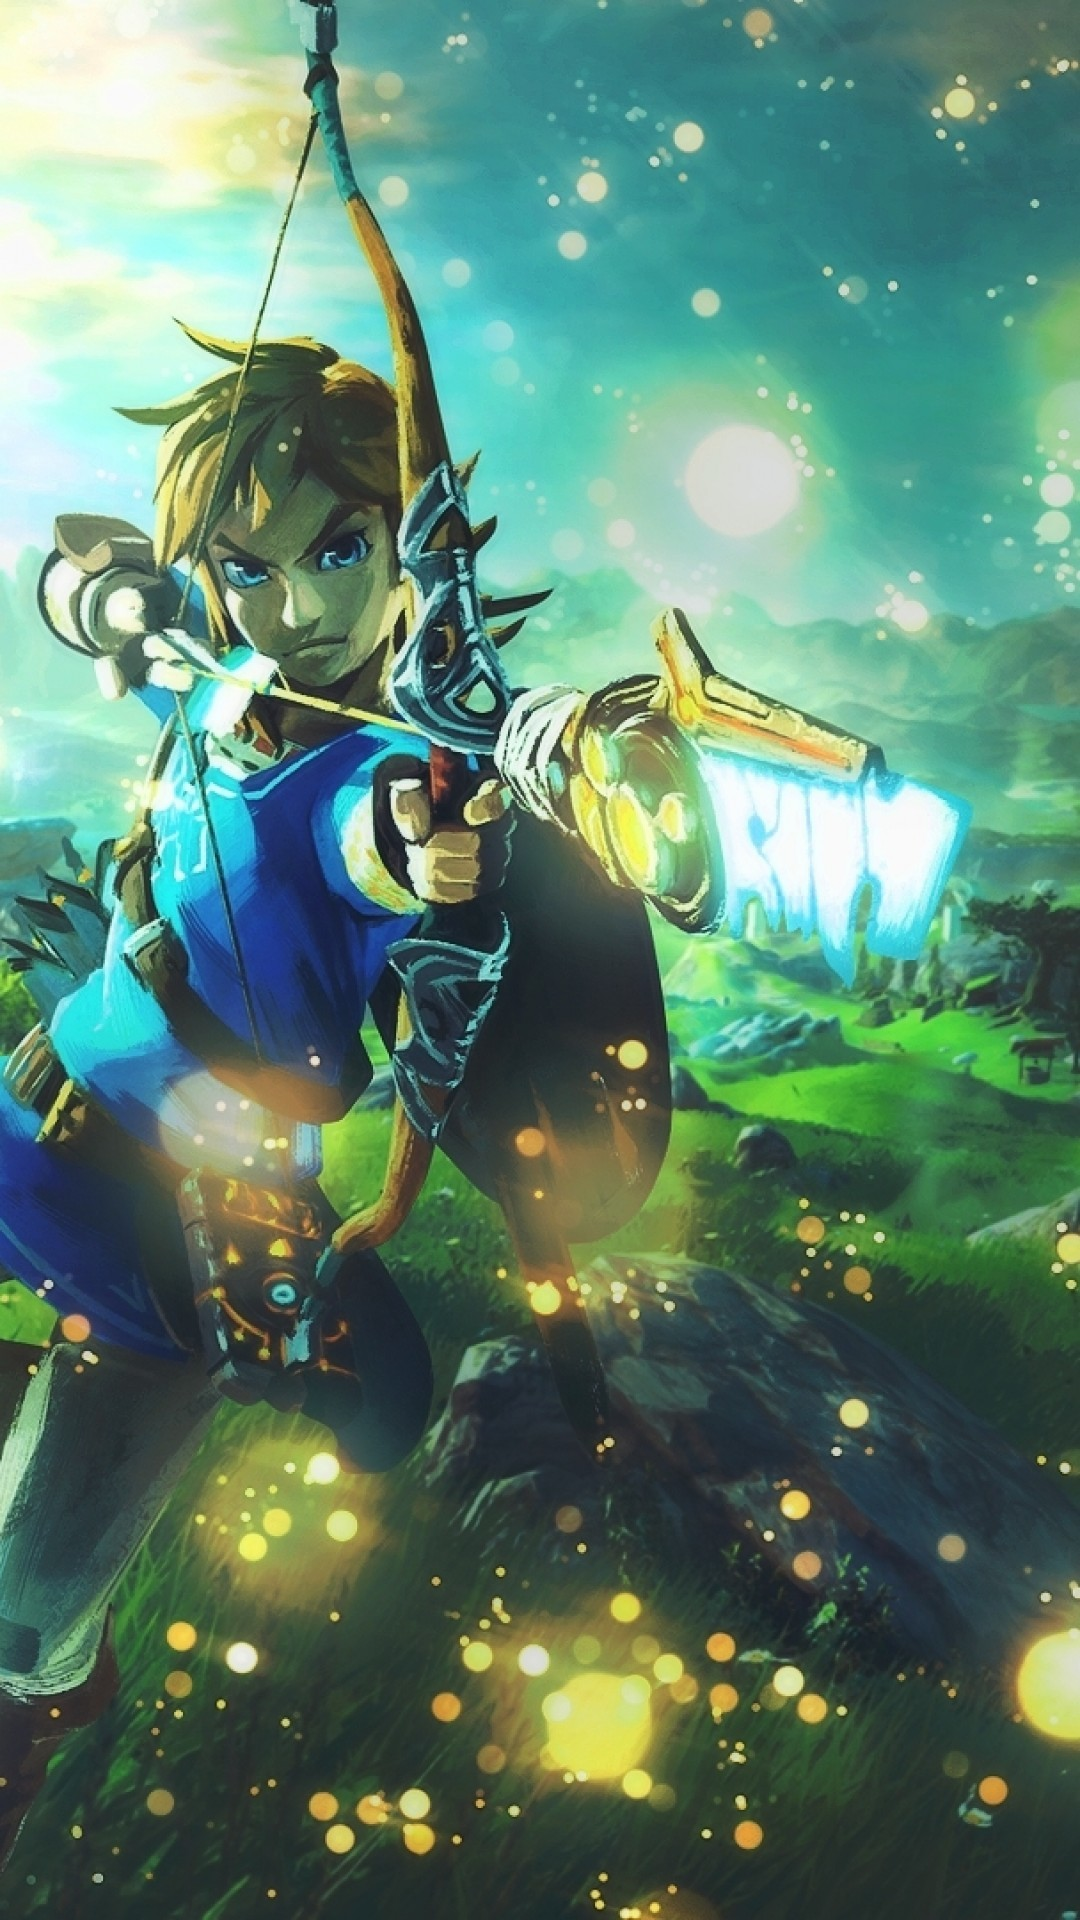 1080x1920 Wallpaperwiki Free Download Zelda Iphone Wallpaper PIC